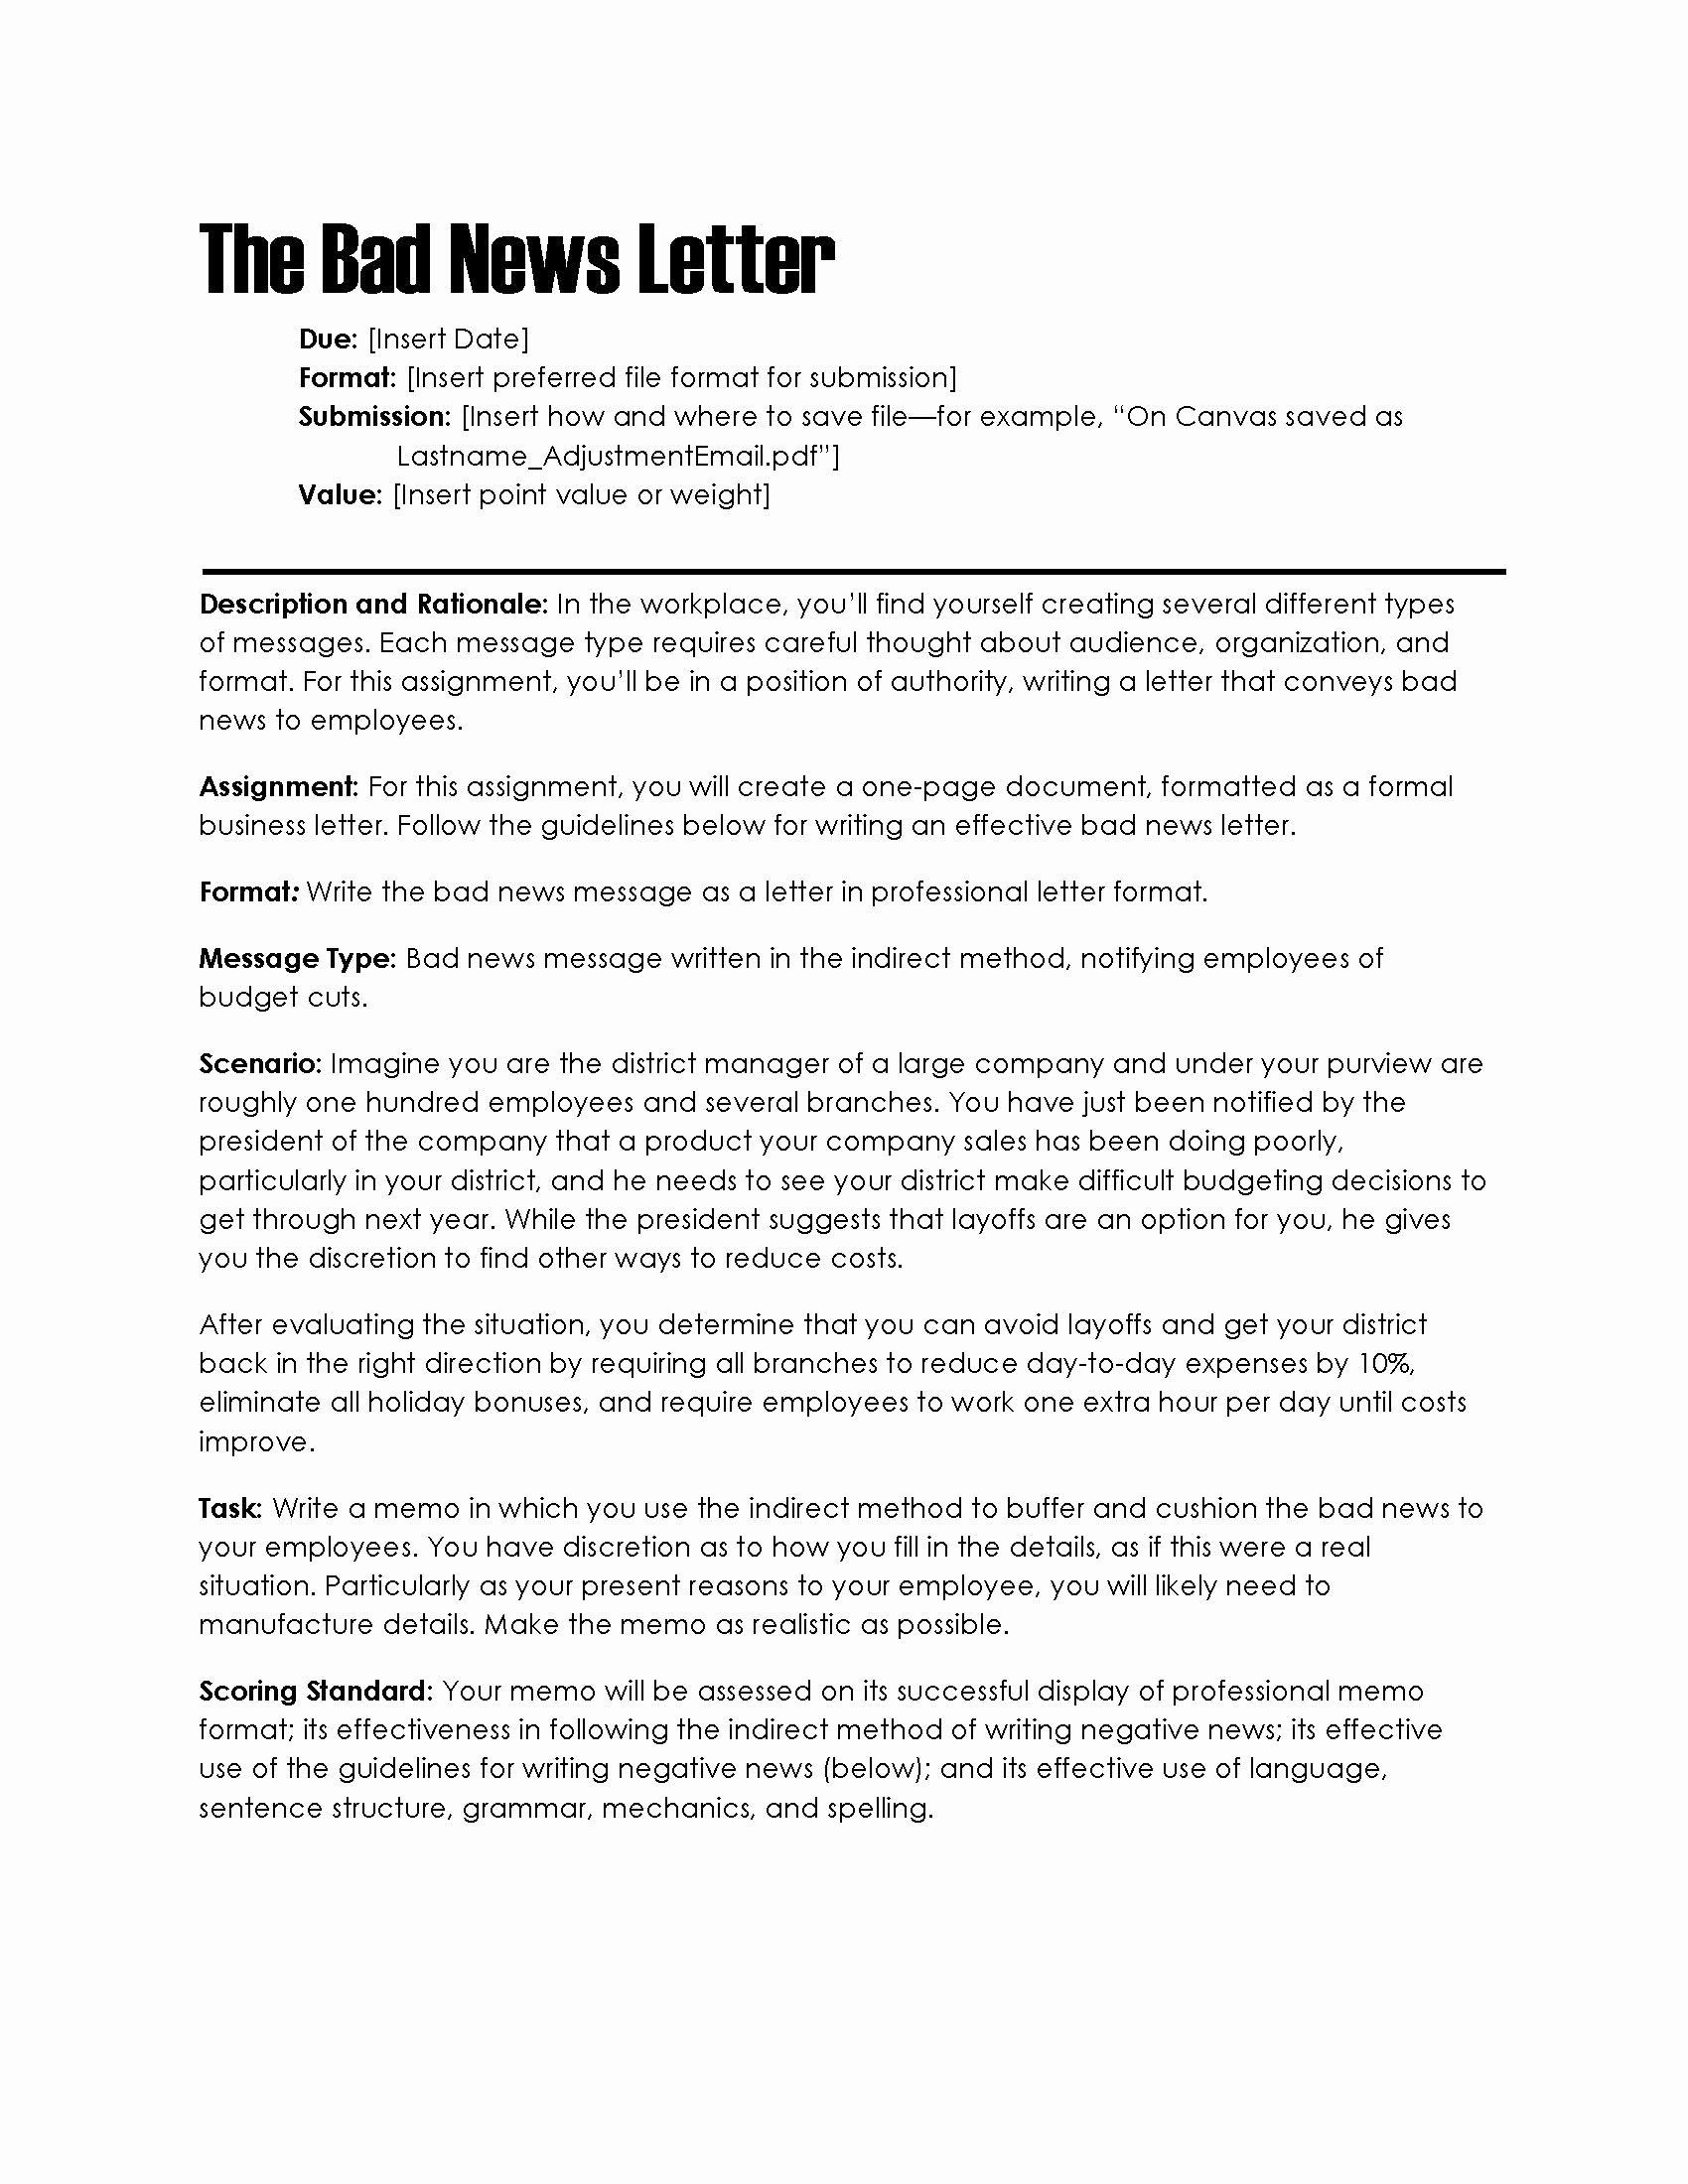 Bad News Letter format Inspirational Bad News Letter – the Visual Munication Guy Designing